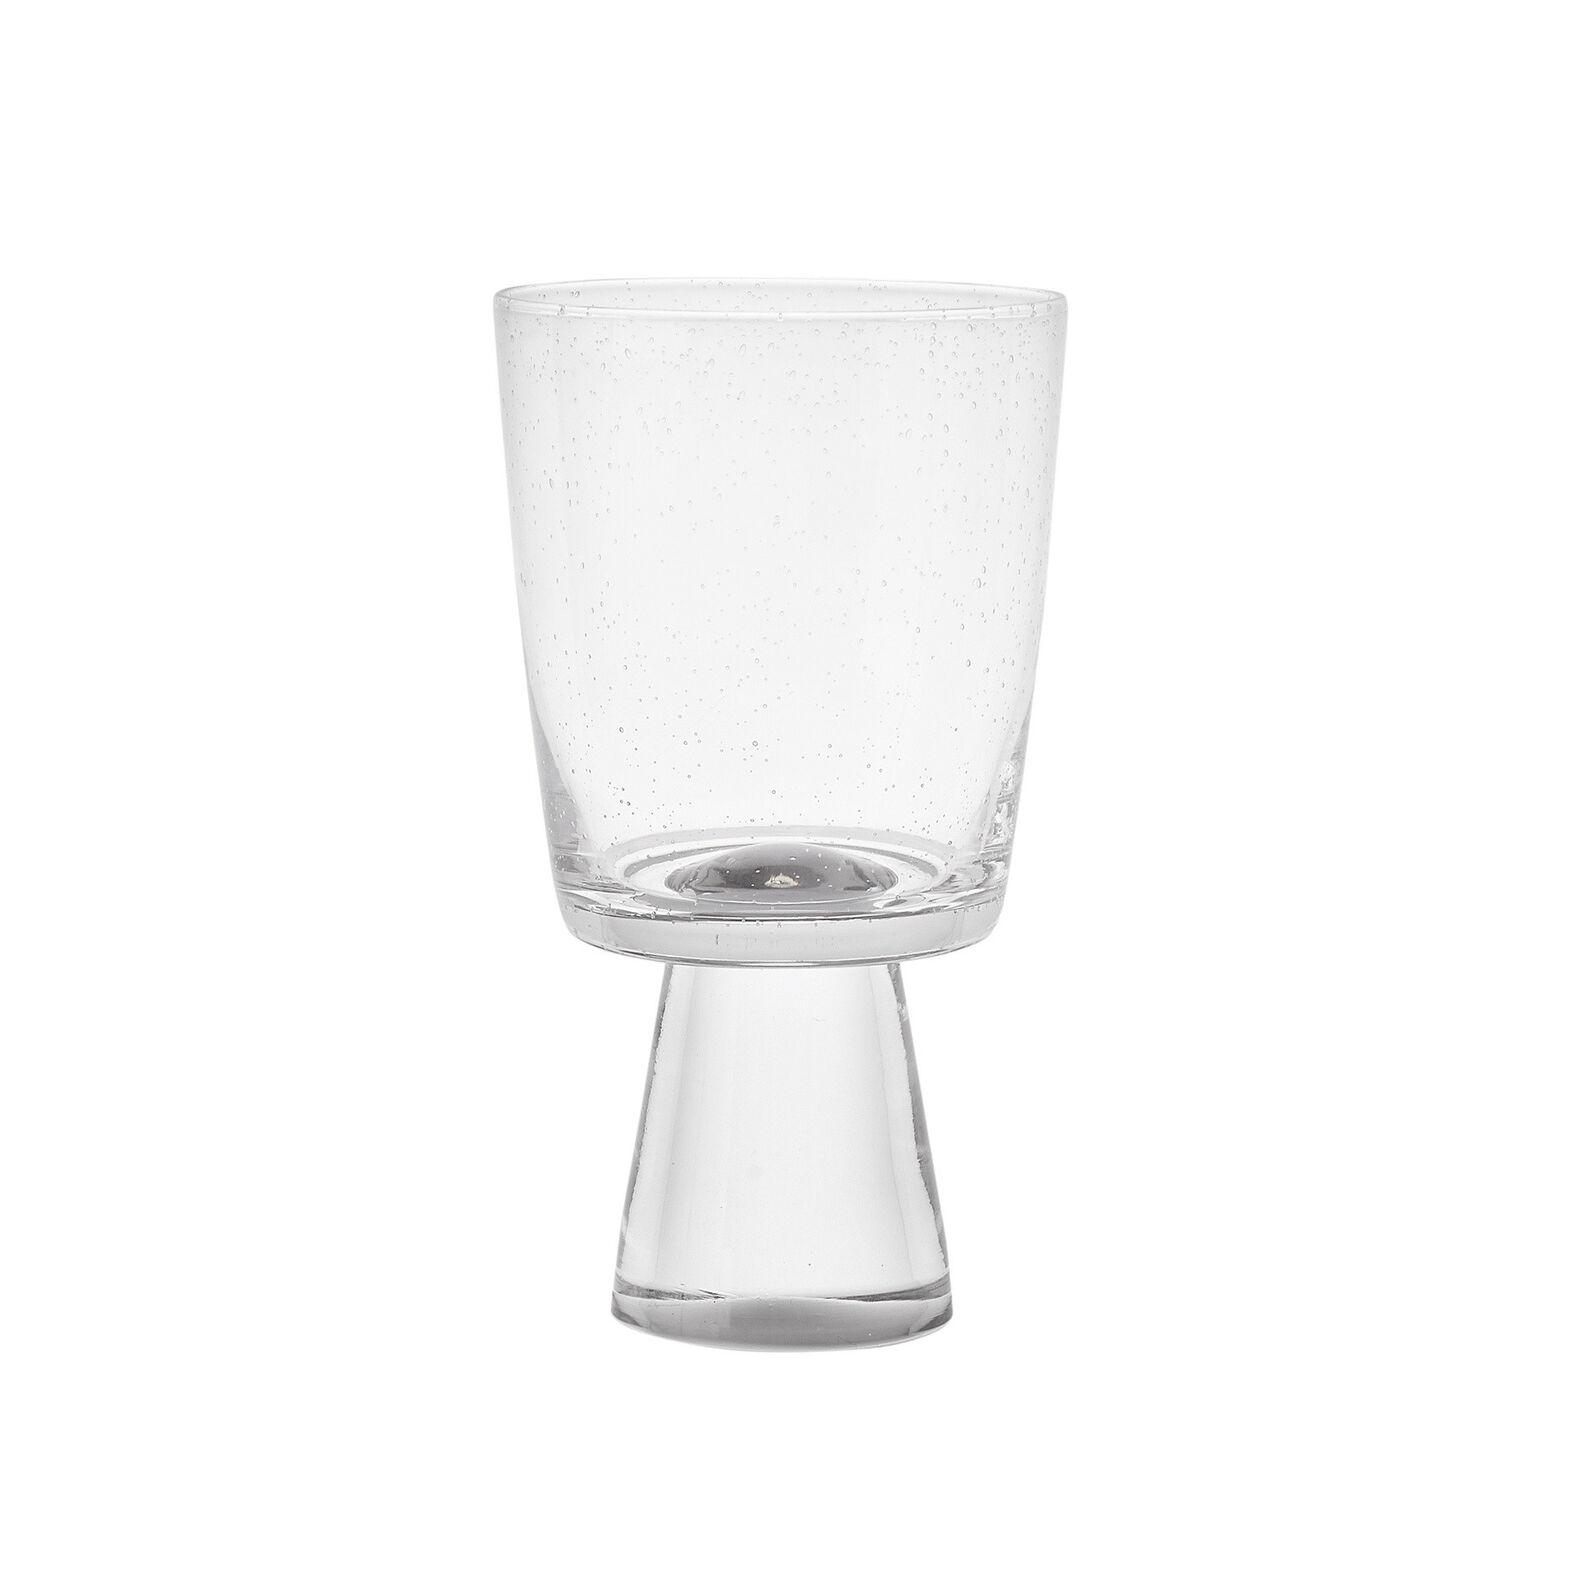 Glass water goblet with bubbles